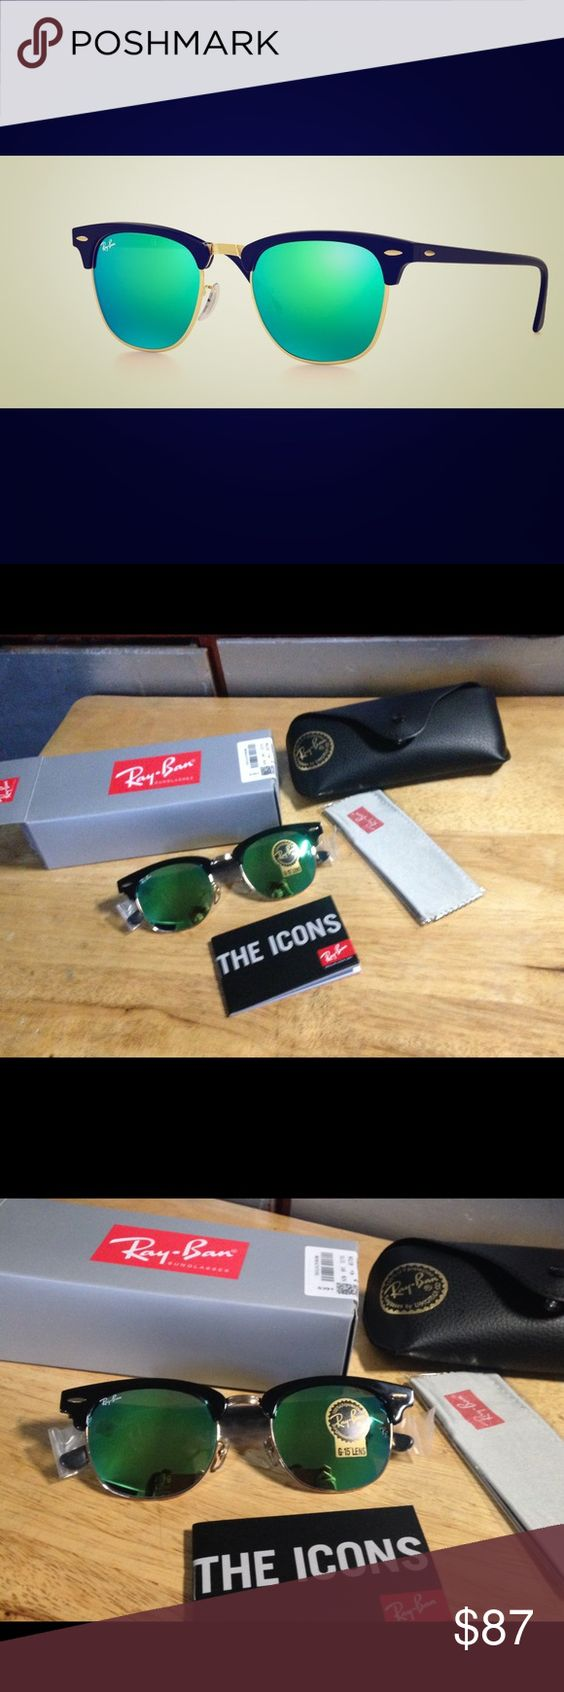 New Rayban clubmaster 3016 green reflective Brand new! It comes with original box, cloth, leather case, and booklet. 51 mm is the size. Please message me if you are interested. No trades please! These are brand new and the price is logical. But feel free to make an offer. Thanks :) Ray-Ban Accessories Sunglasses